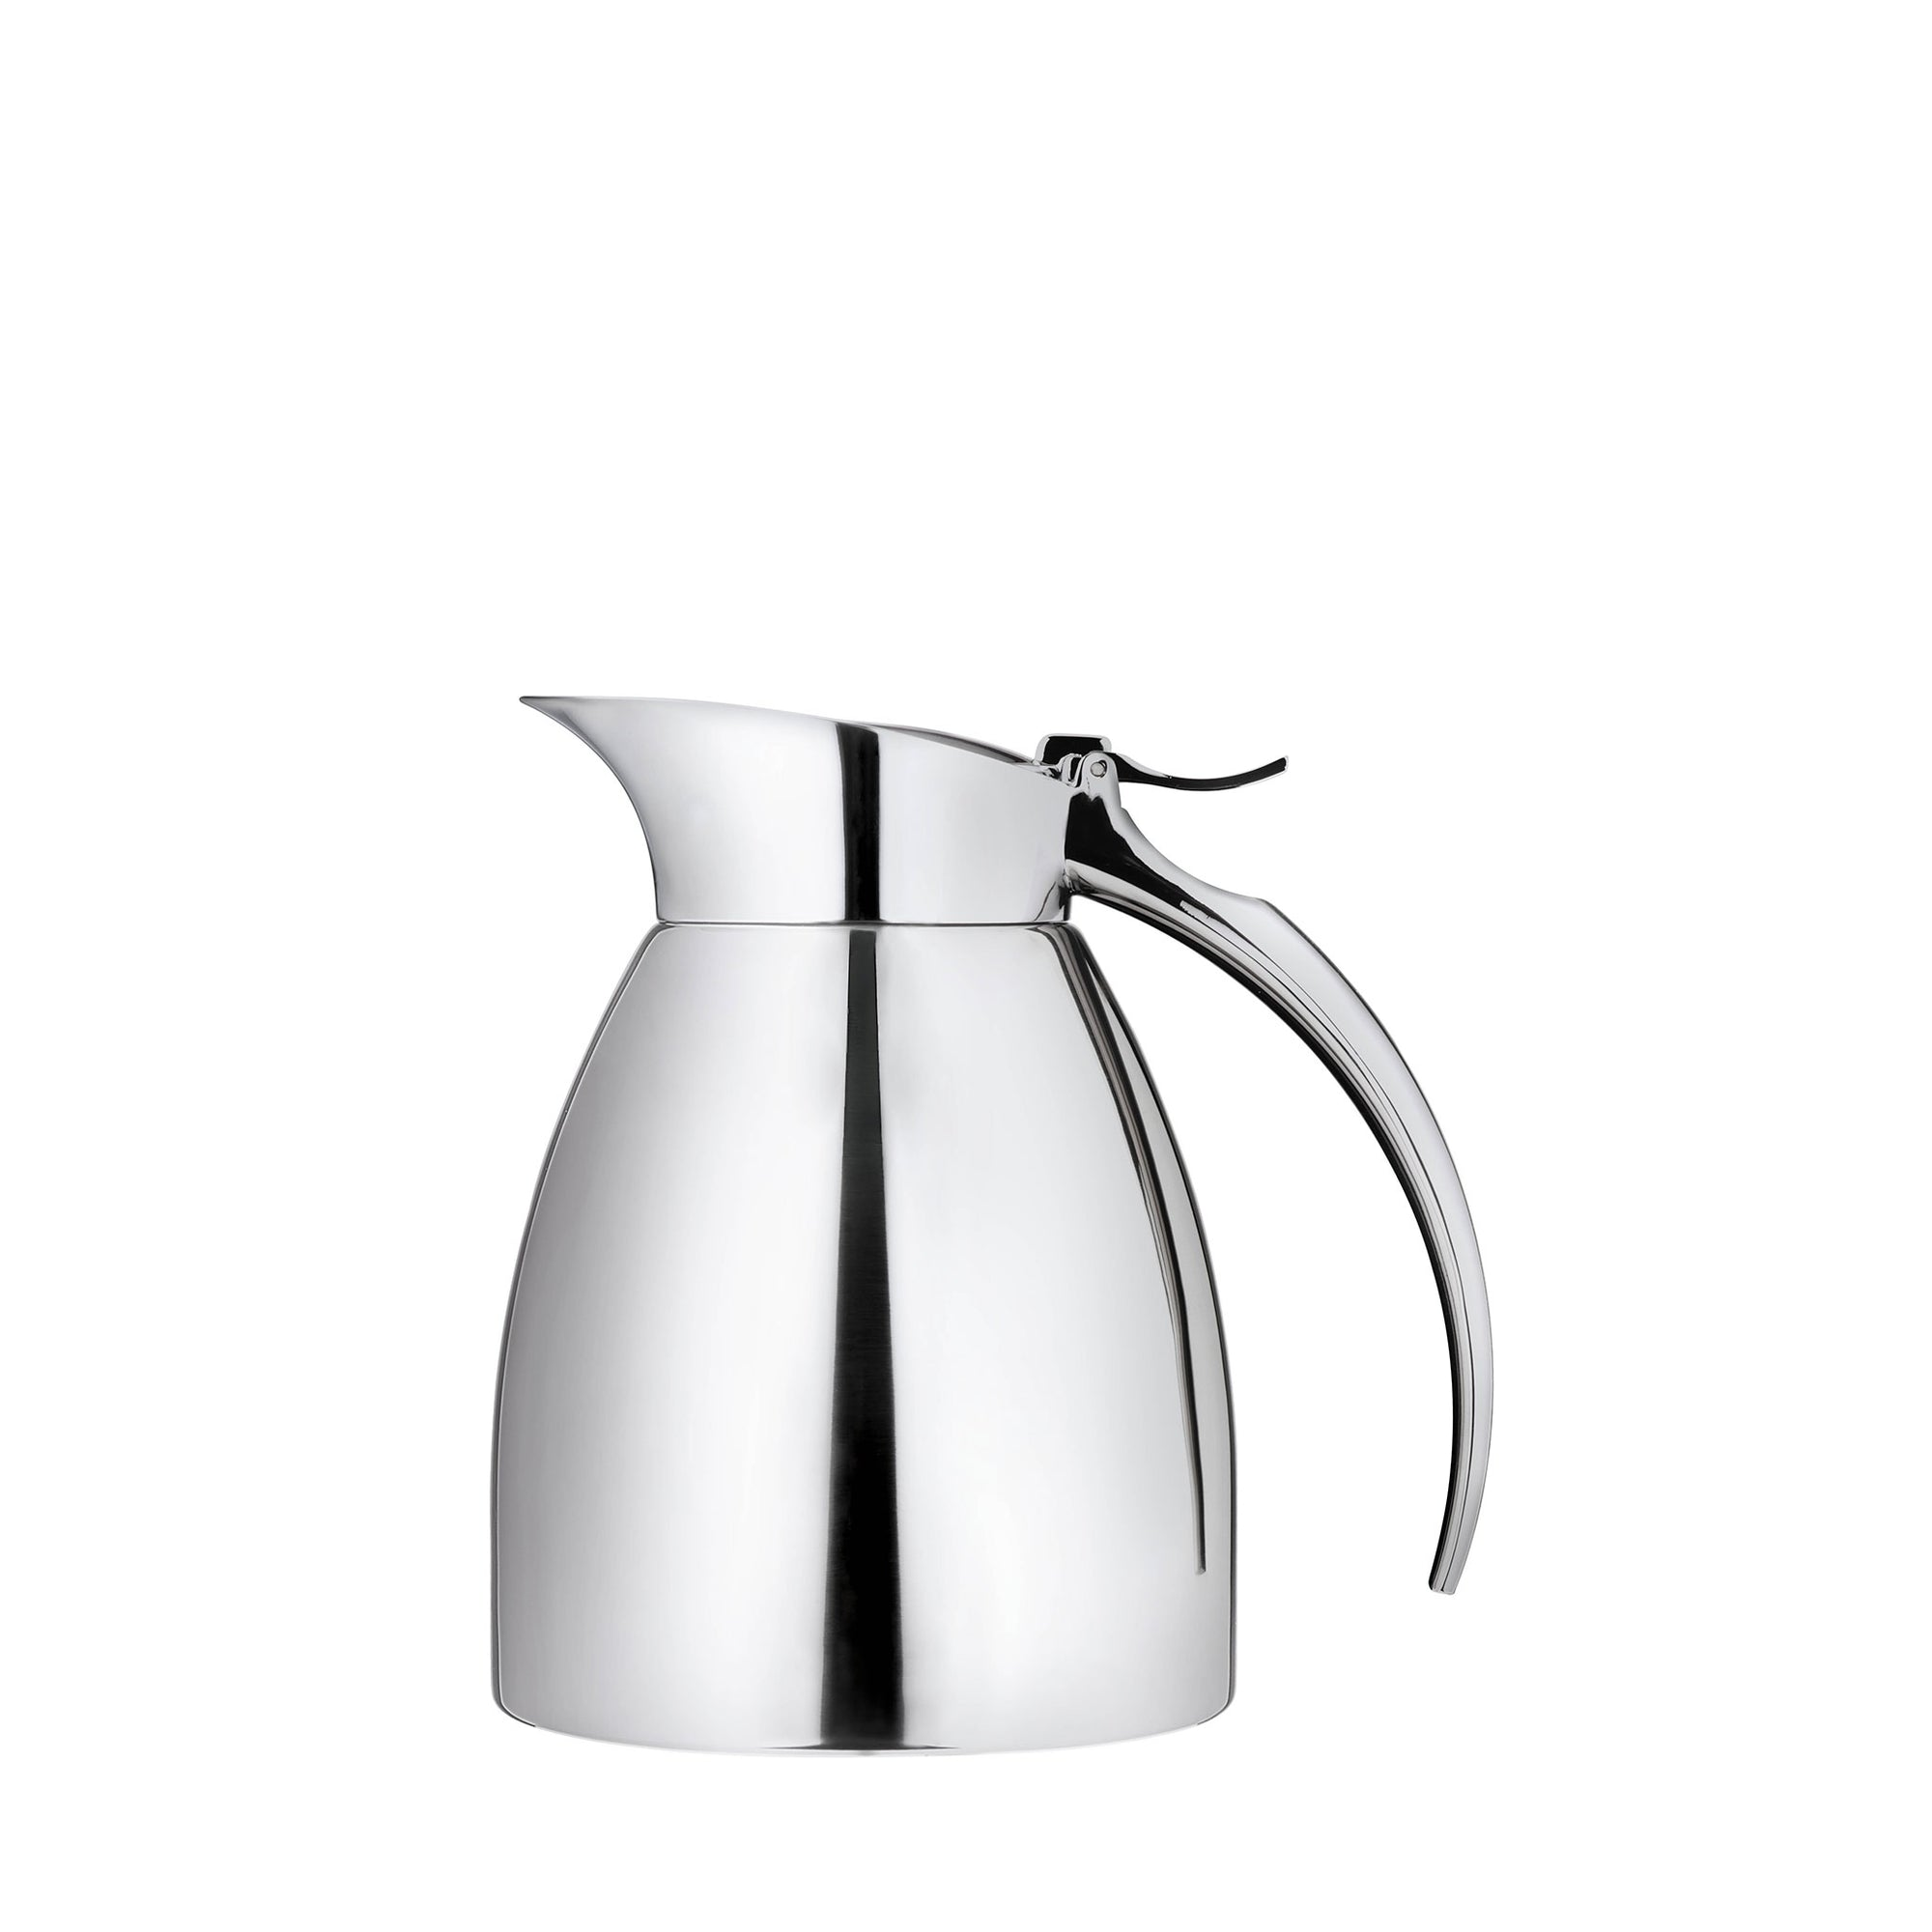 Jug Stainless Steel Vacuum 300ml - Heirol - Espresso Gear